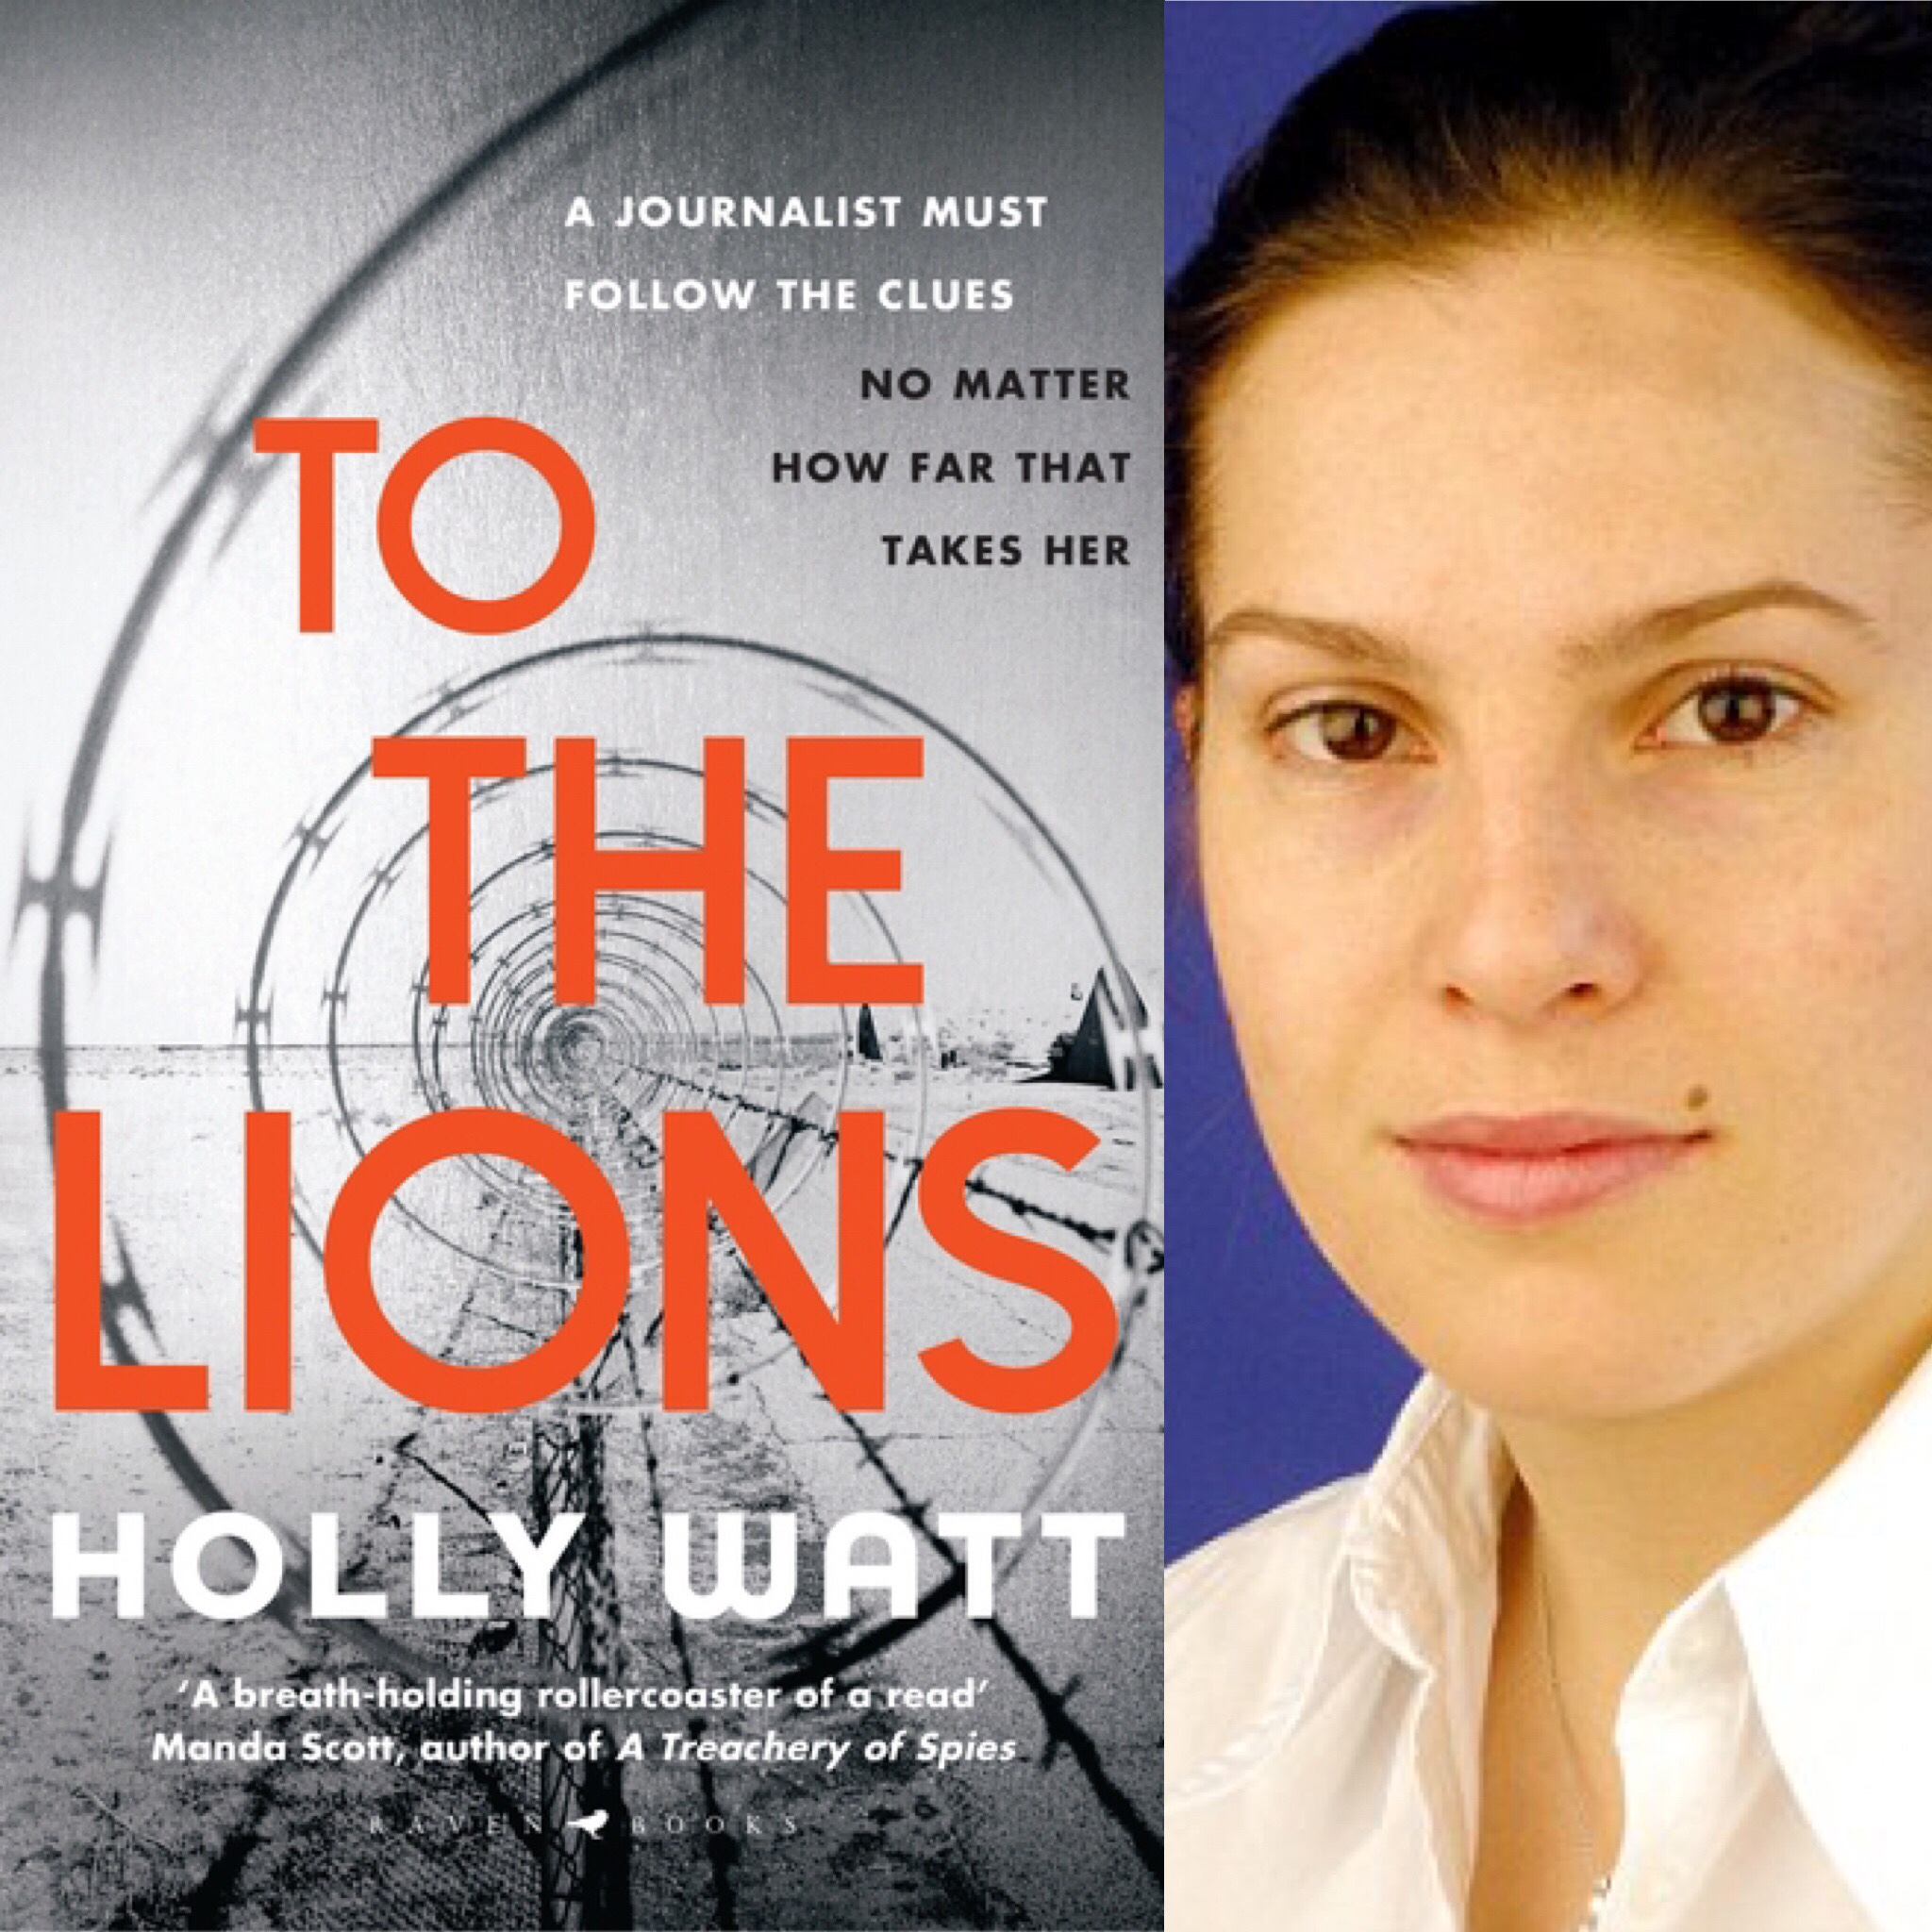 To the lions by Holly Watt book cover